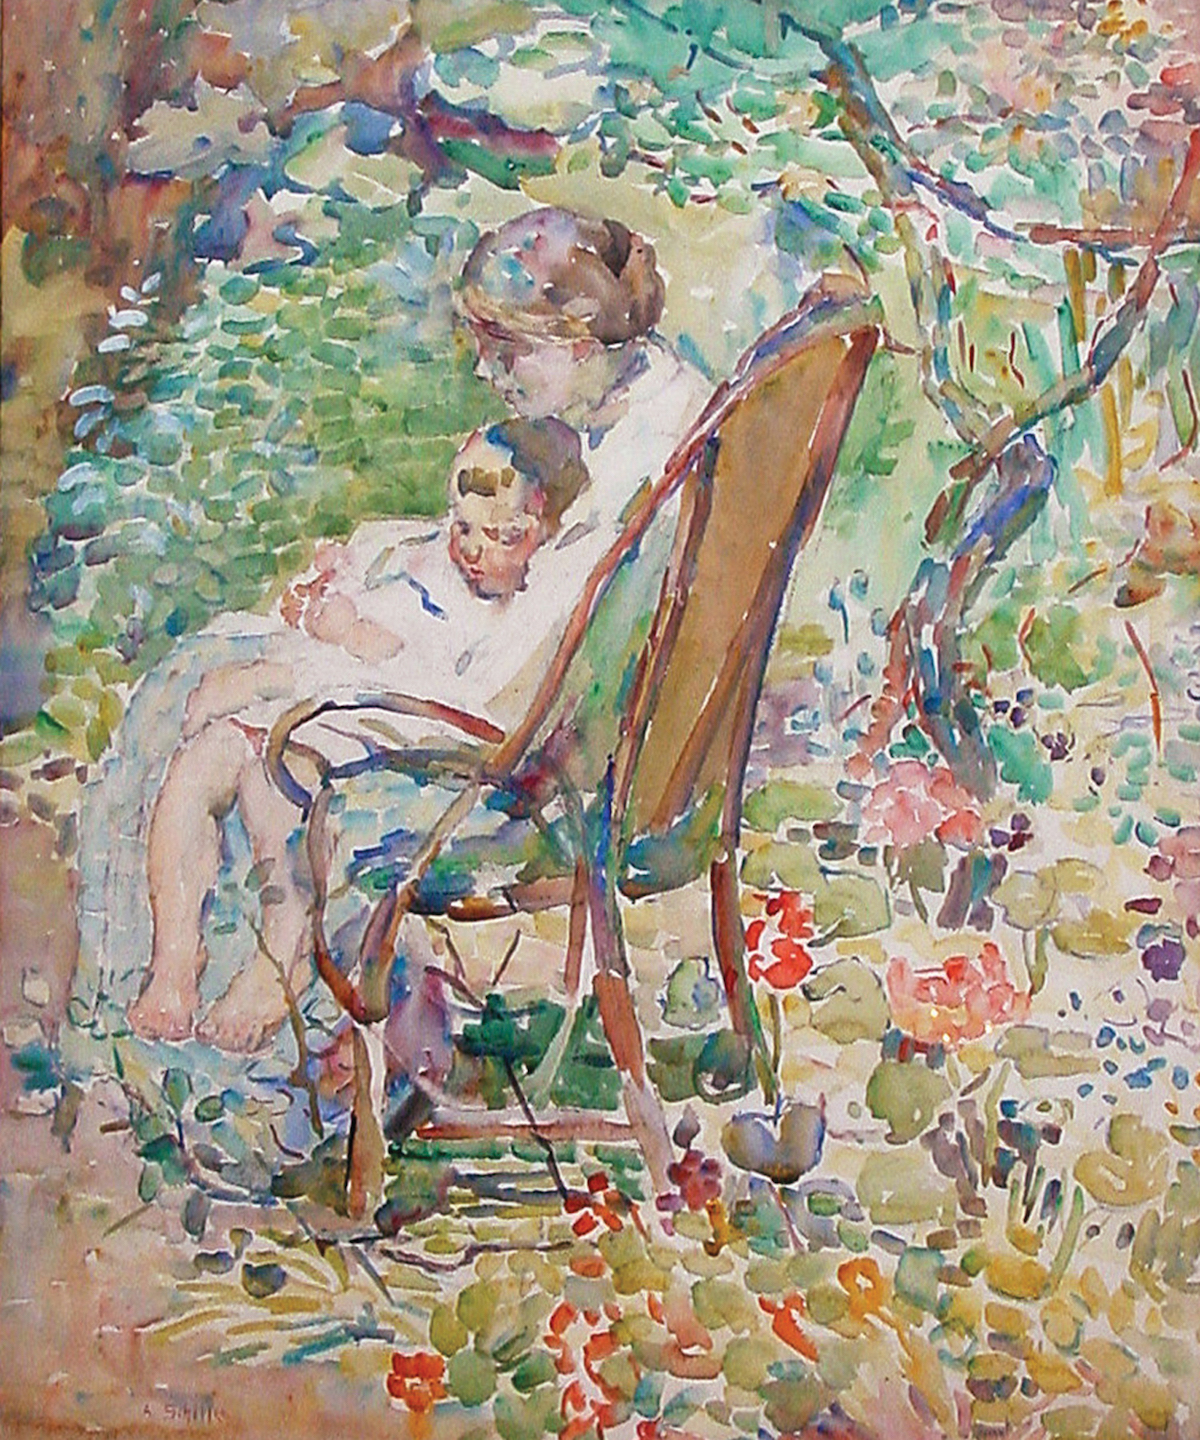 Alice Schille, Mother and Child in a Garden, France, c. 1911-12. Collection of Ann and Tom Hoaglin